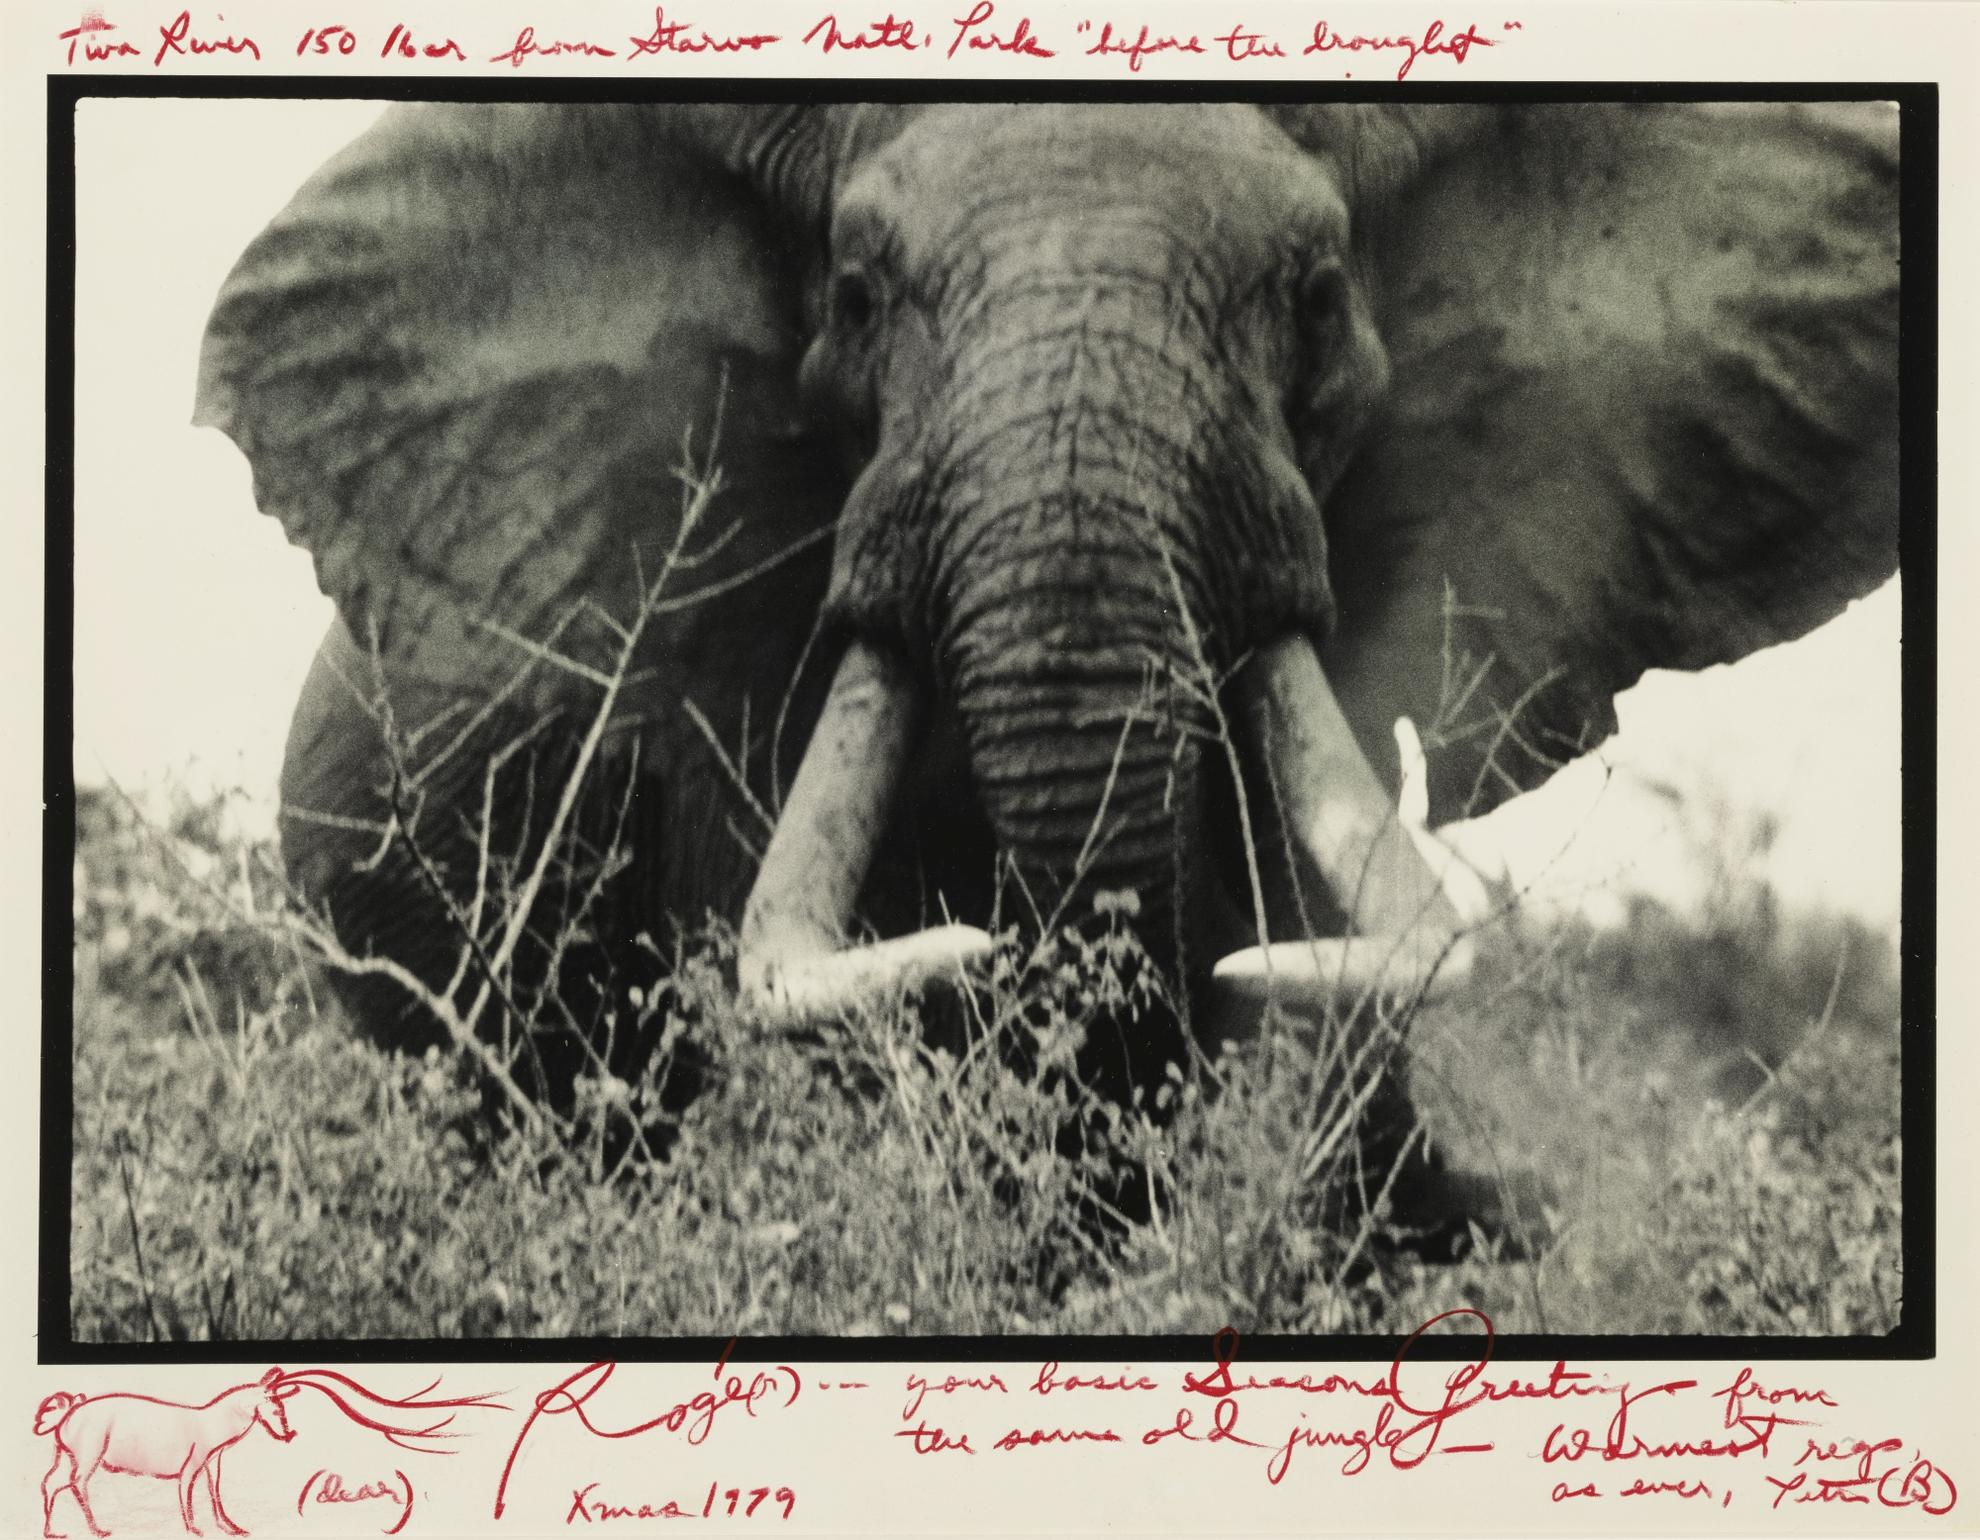 Peter Beard-Tiva River 150Lber From Tsavo Natl. Park 'Before The Drought'-1965